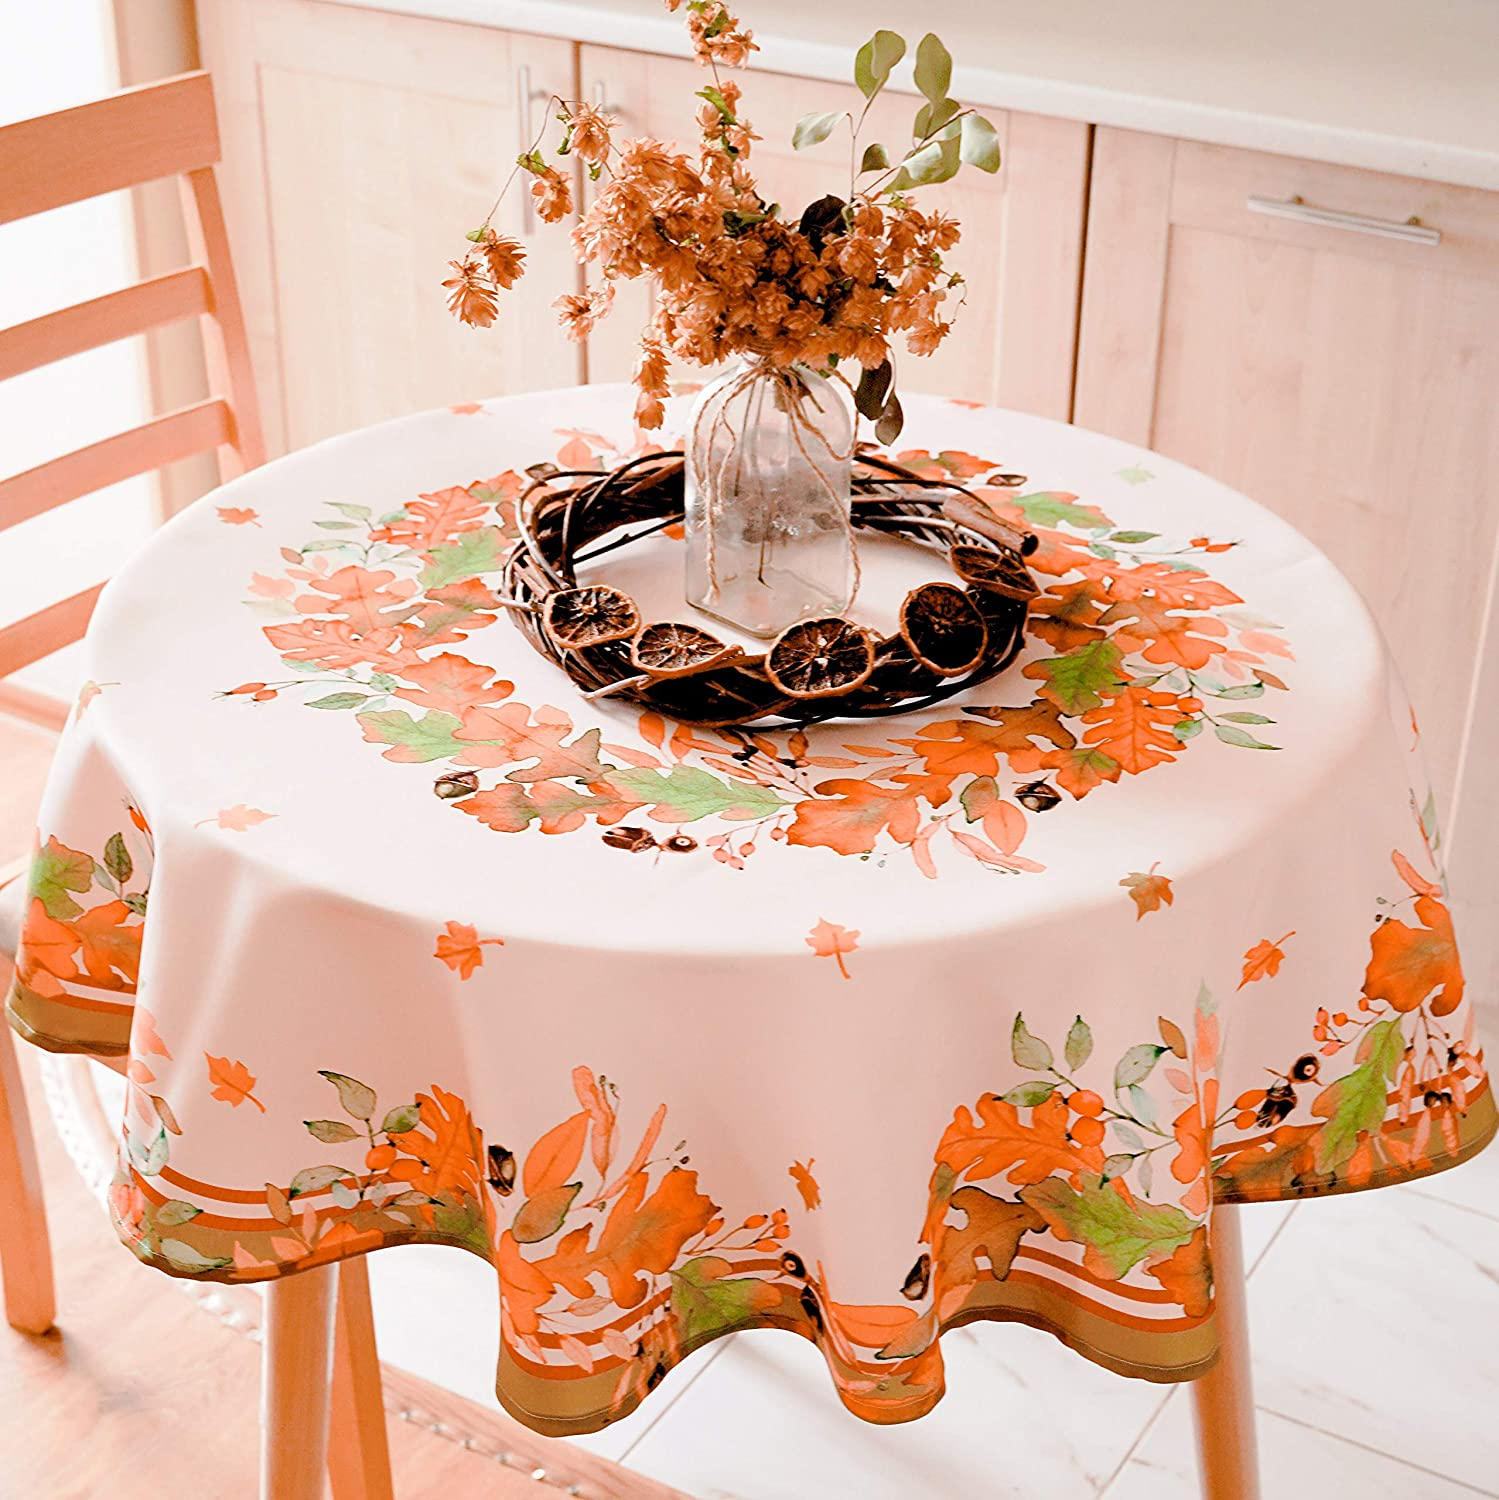 "AHOLTA DESIGN Non-Iron Stain Resistant Thanksgiving Table Cloth – Fall Table Cover Home Dining Room Table Protection - Stylish Ivory Thanksgiving Decorations (Thanksgiving Tablecloth, Round 84"")"